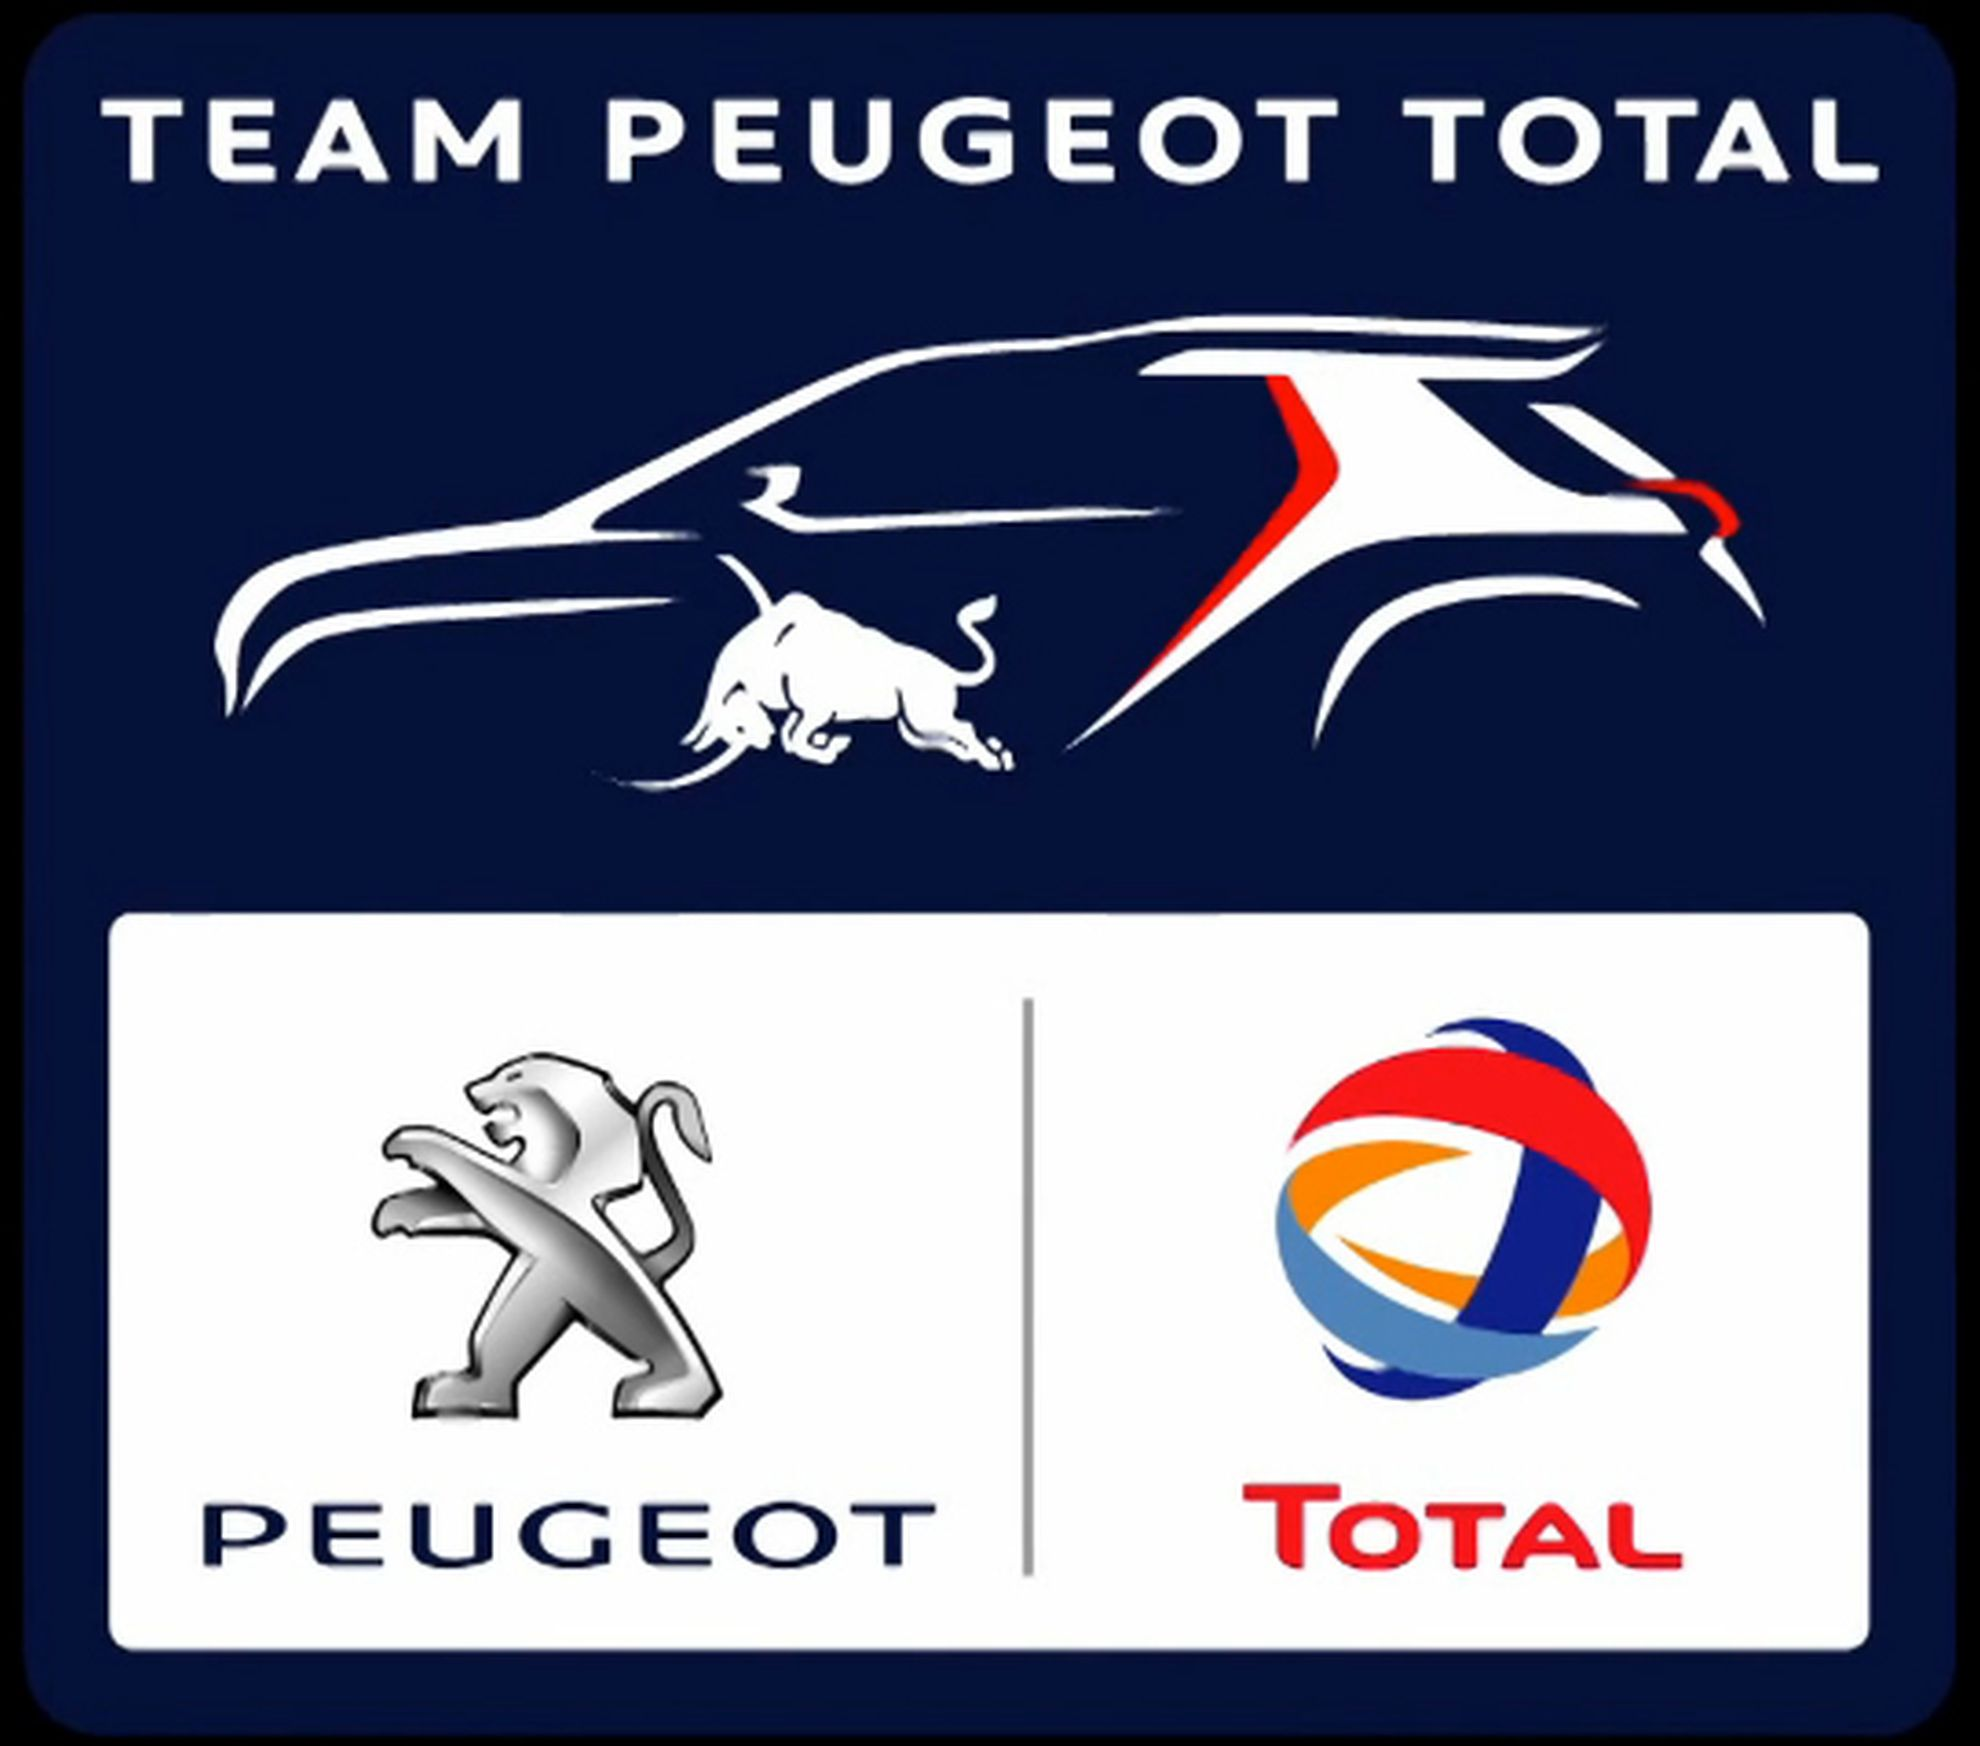 logo-team-peugeot-total